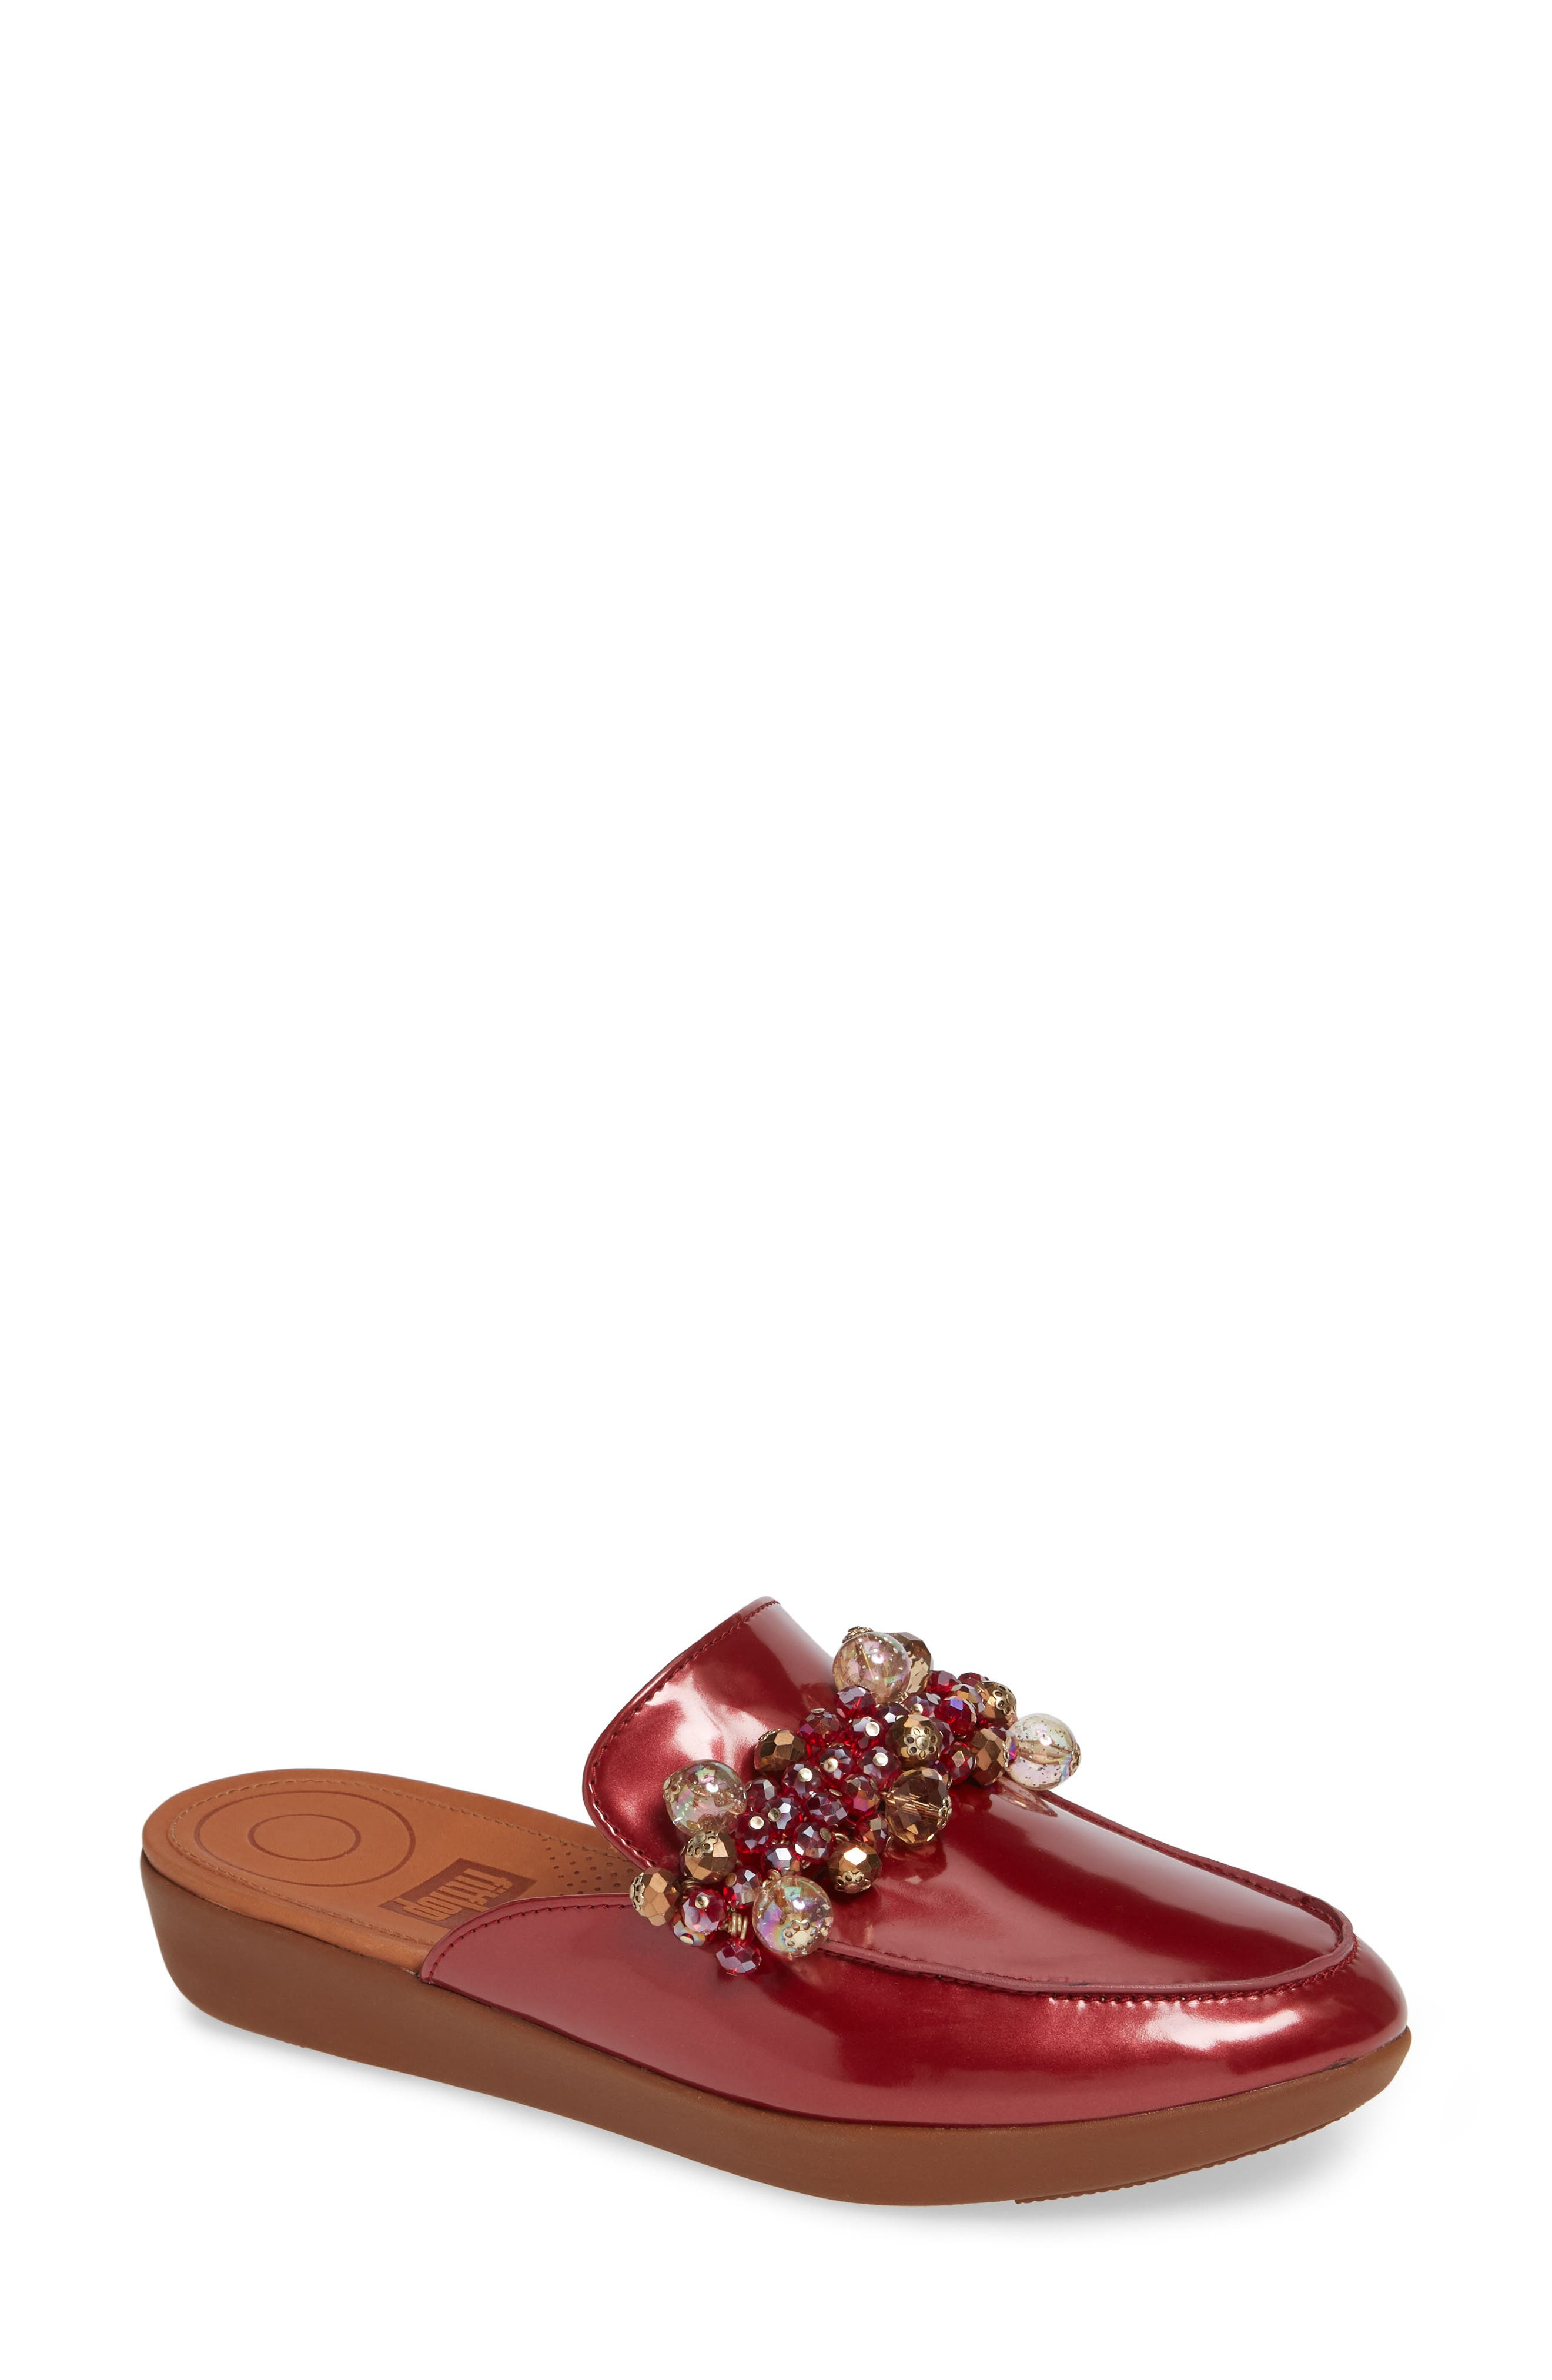 FITFLOP Serene Beaded Mule, Main, color, FIRE RED PATENT LEATHER